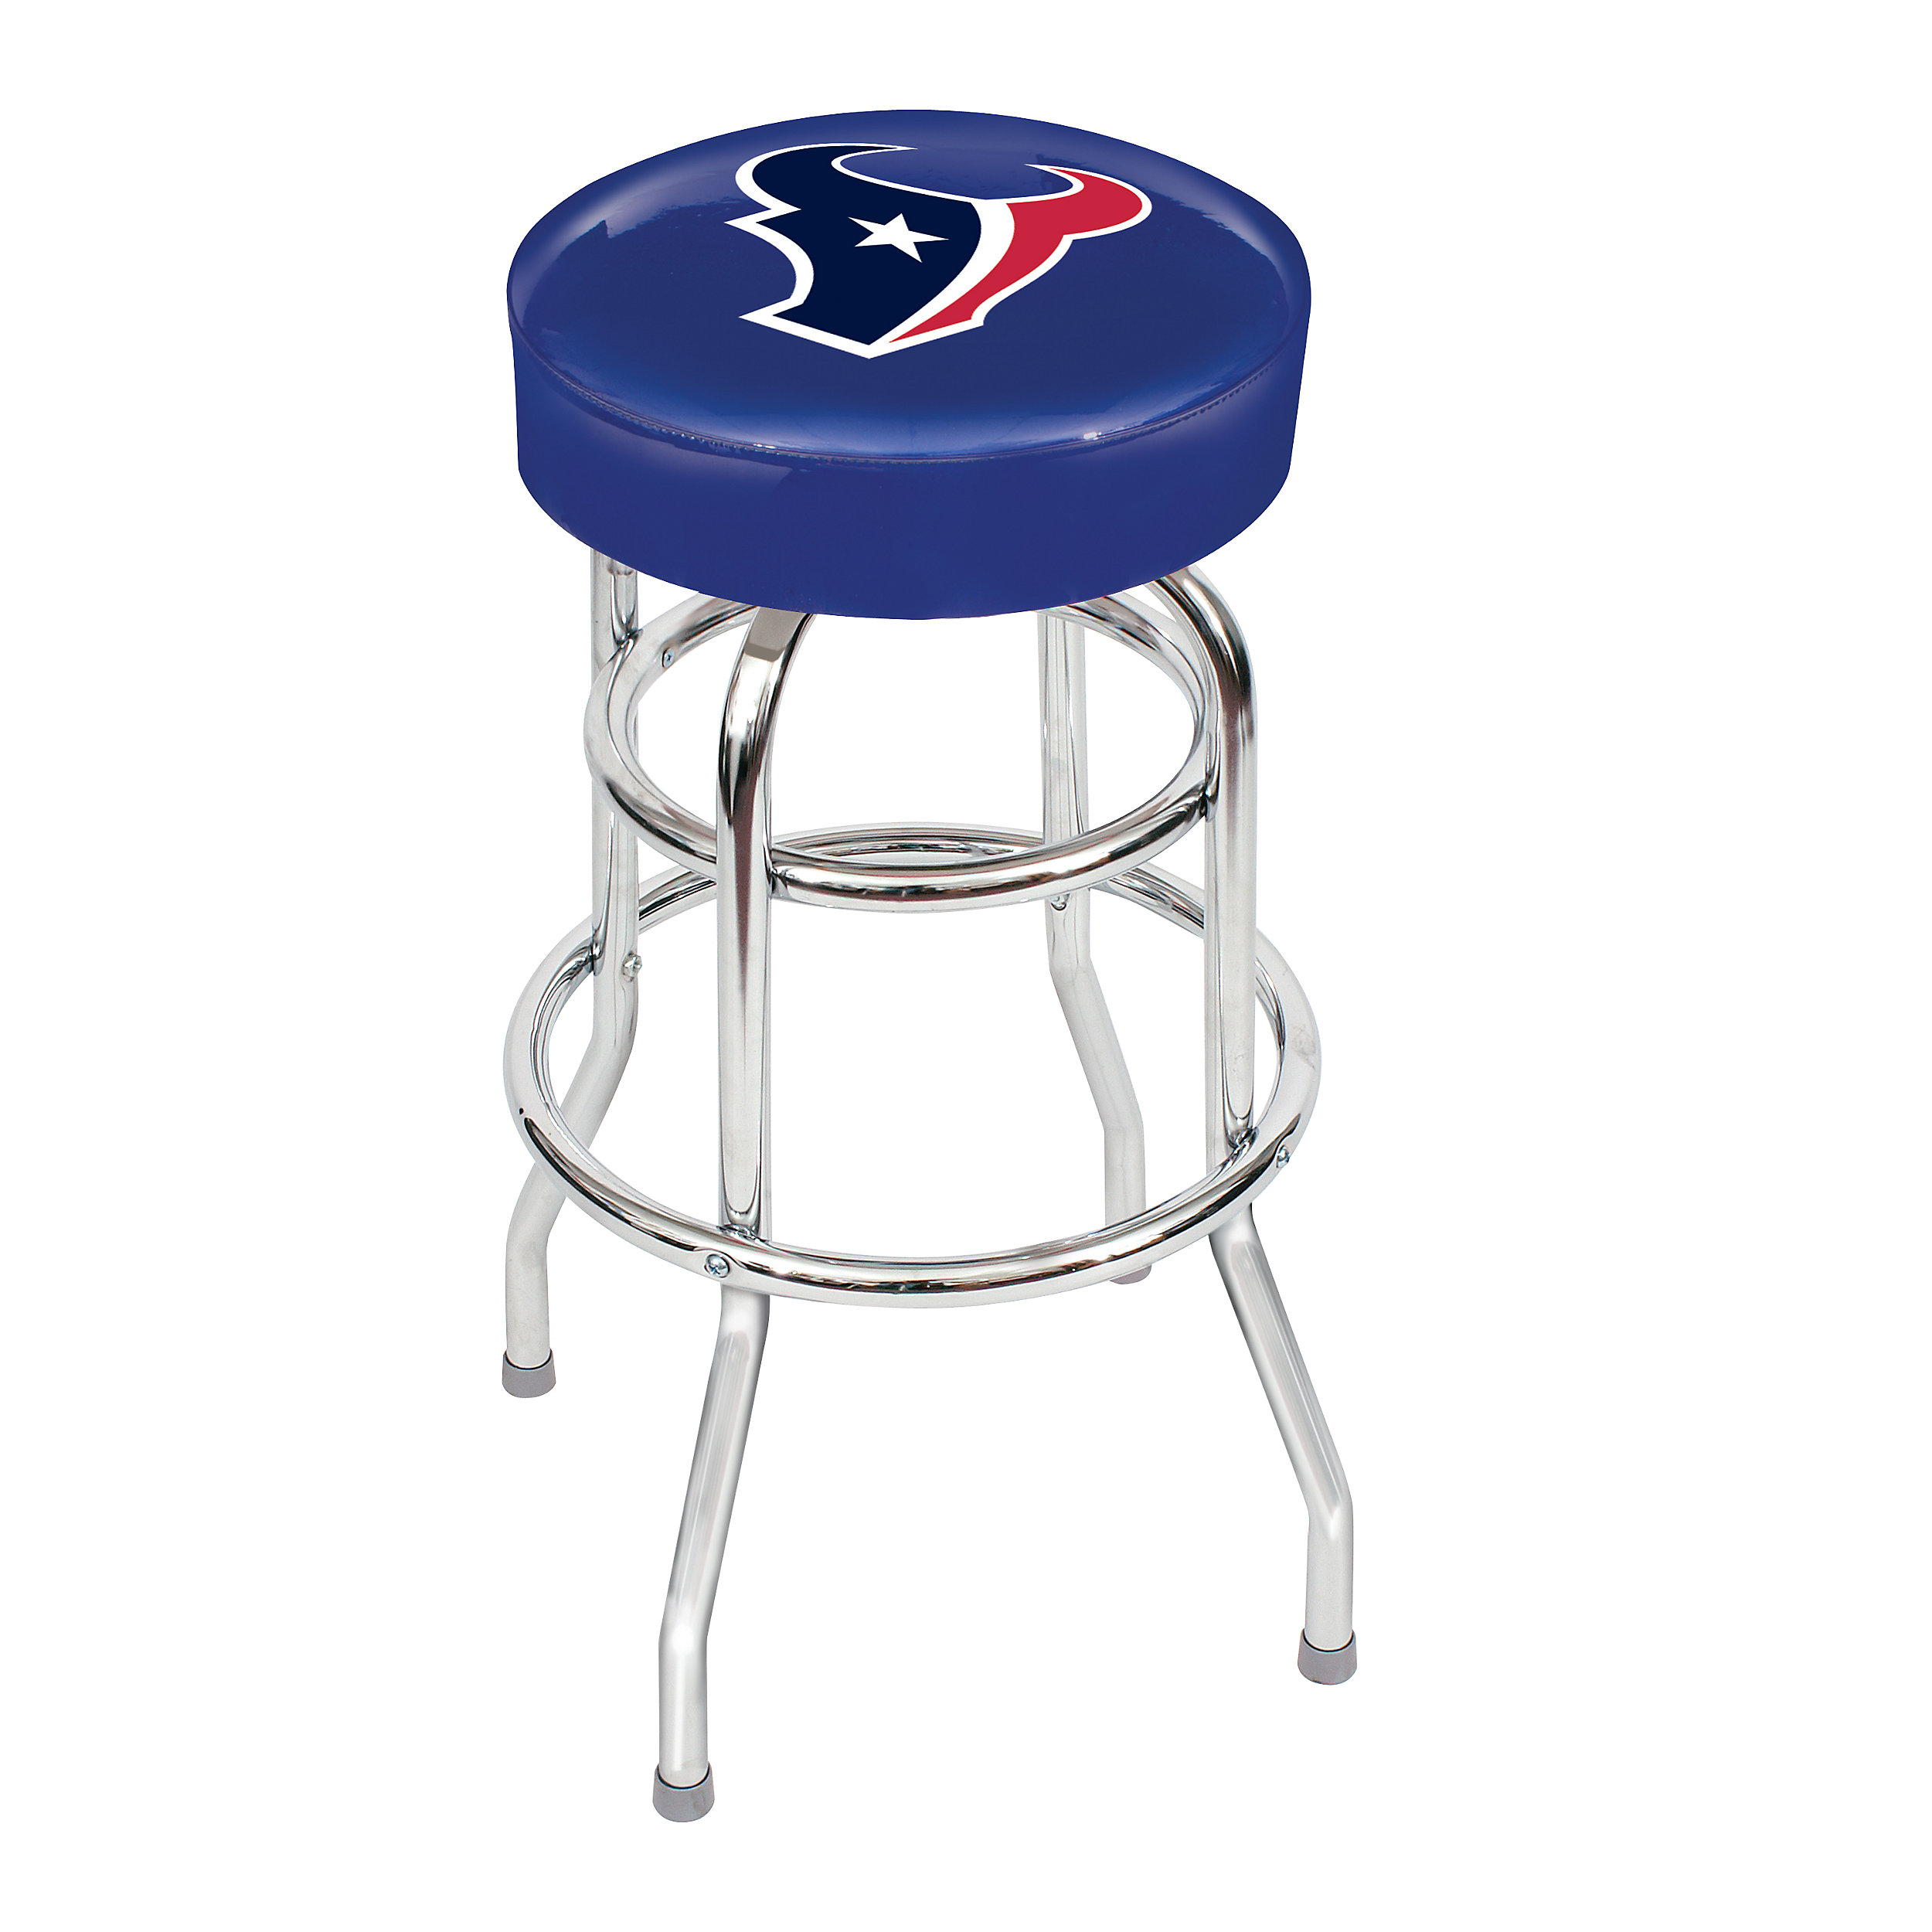 Miami Dolphins Bar Stools